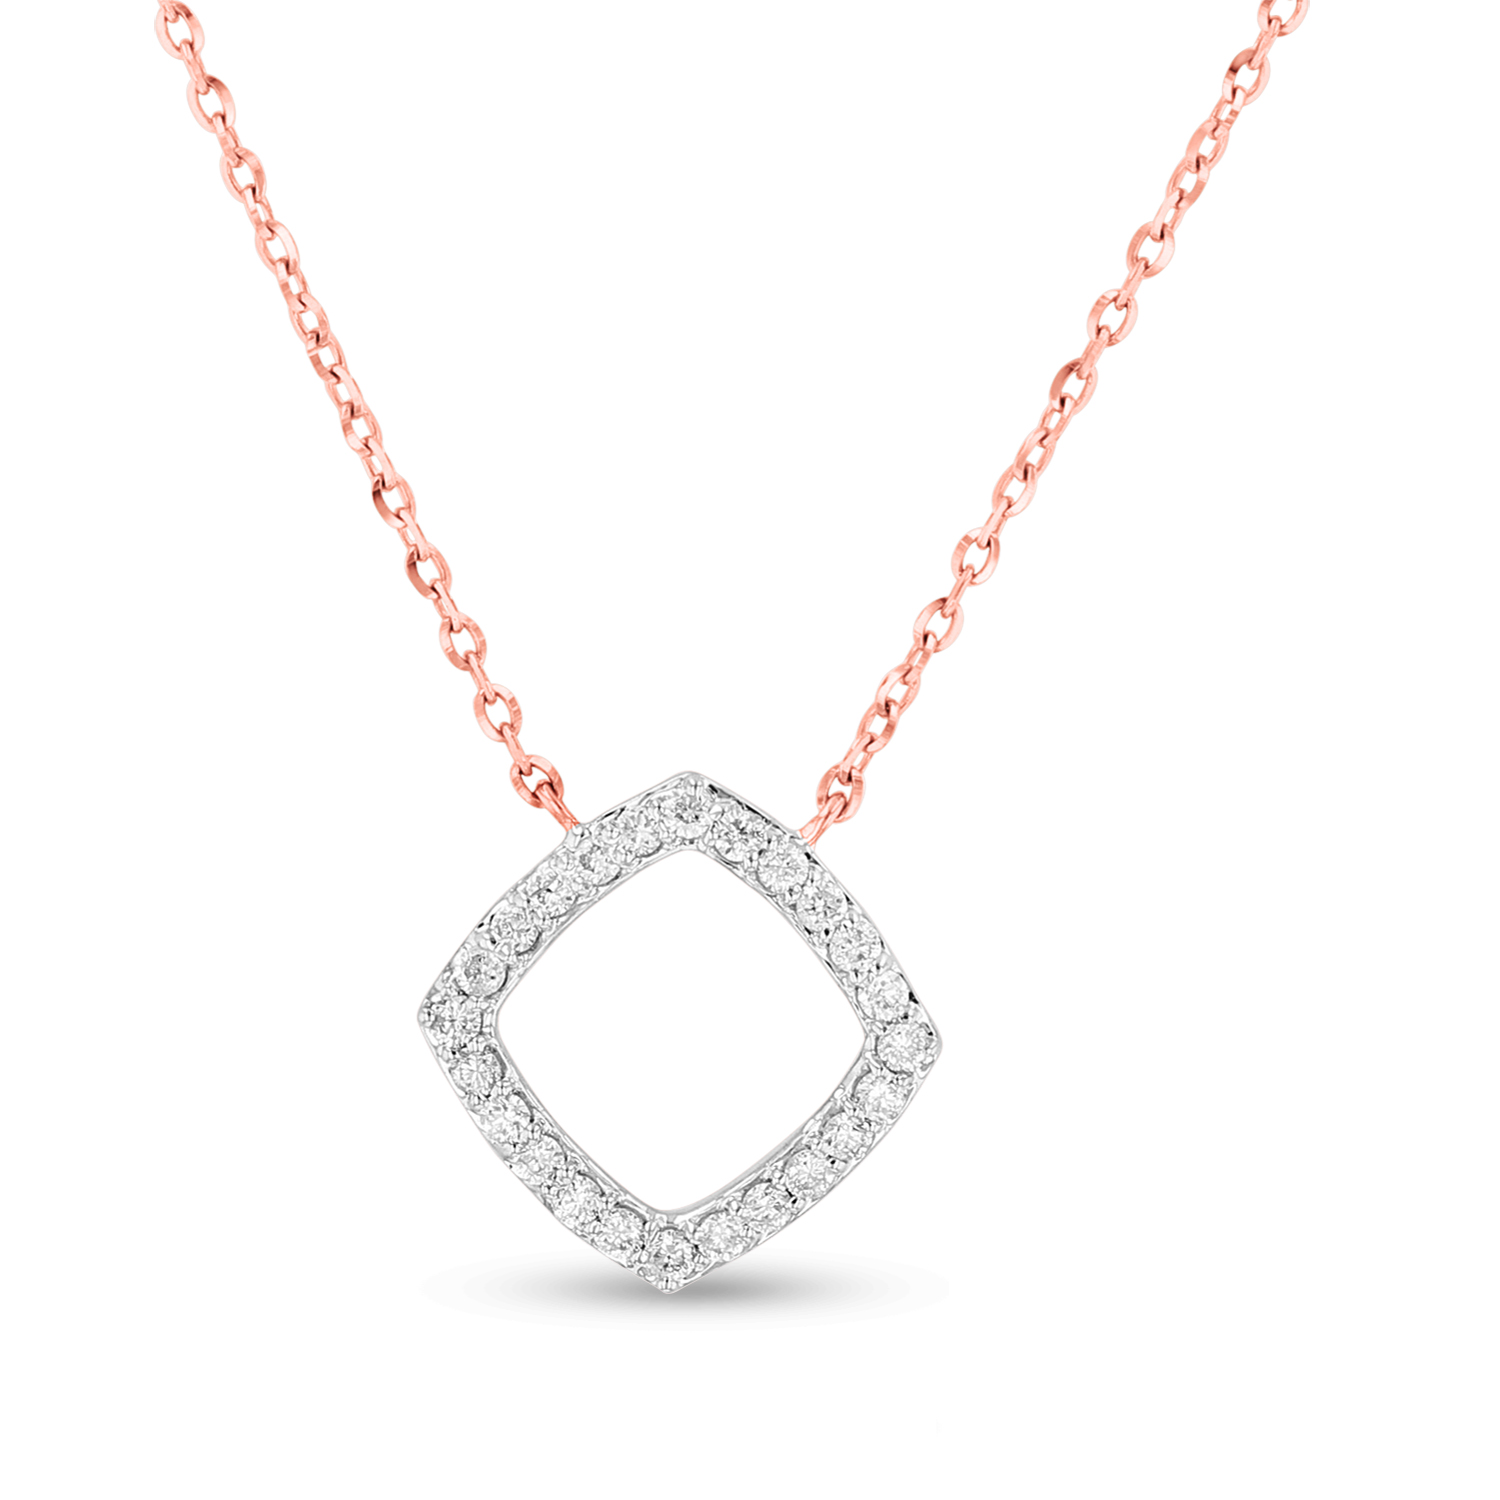 View 0.15ctw Diamond Clover Pendant in 14k Rose Gold